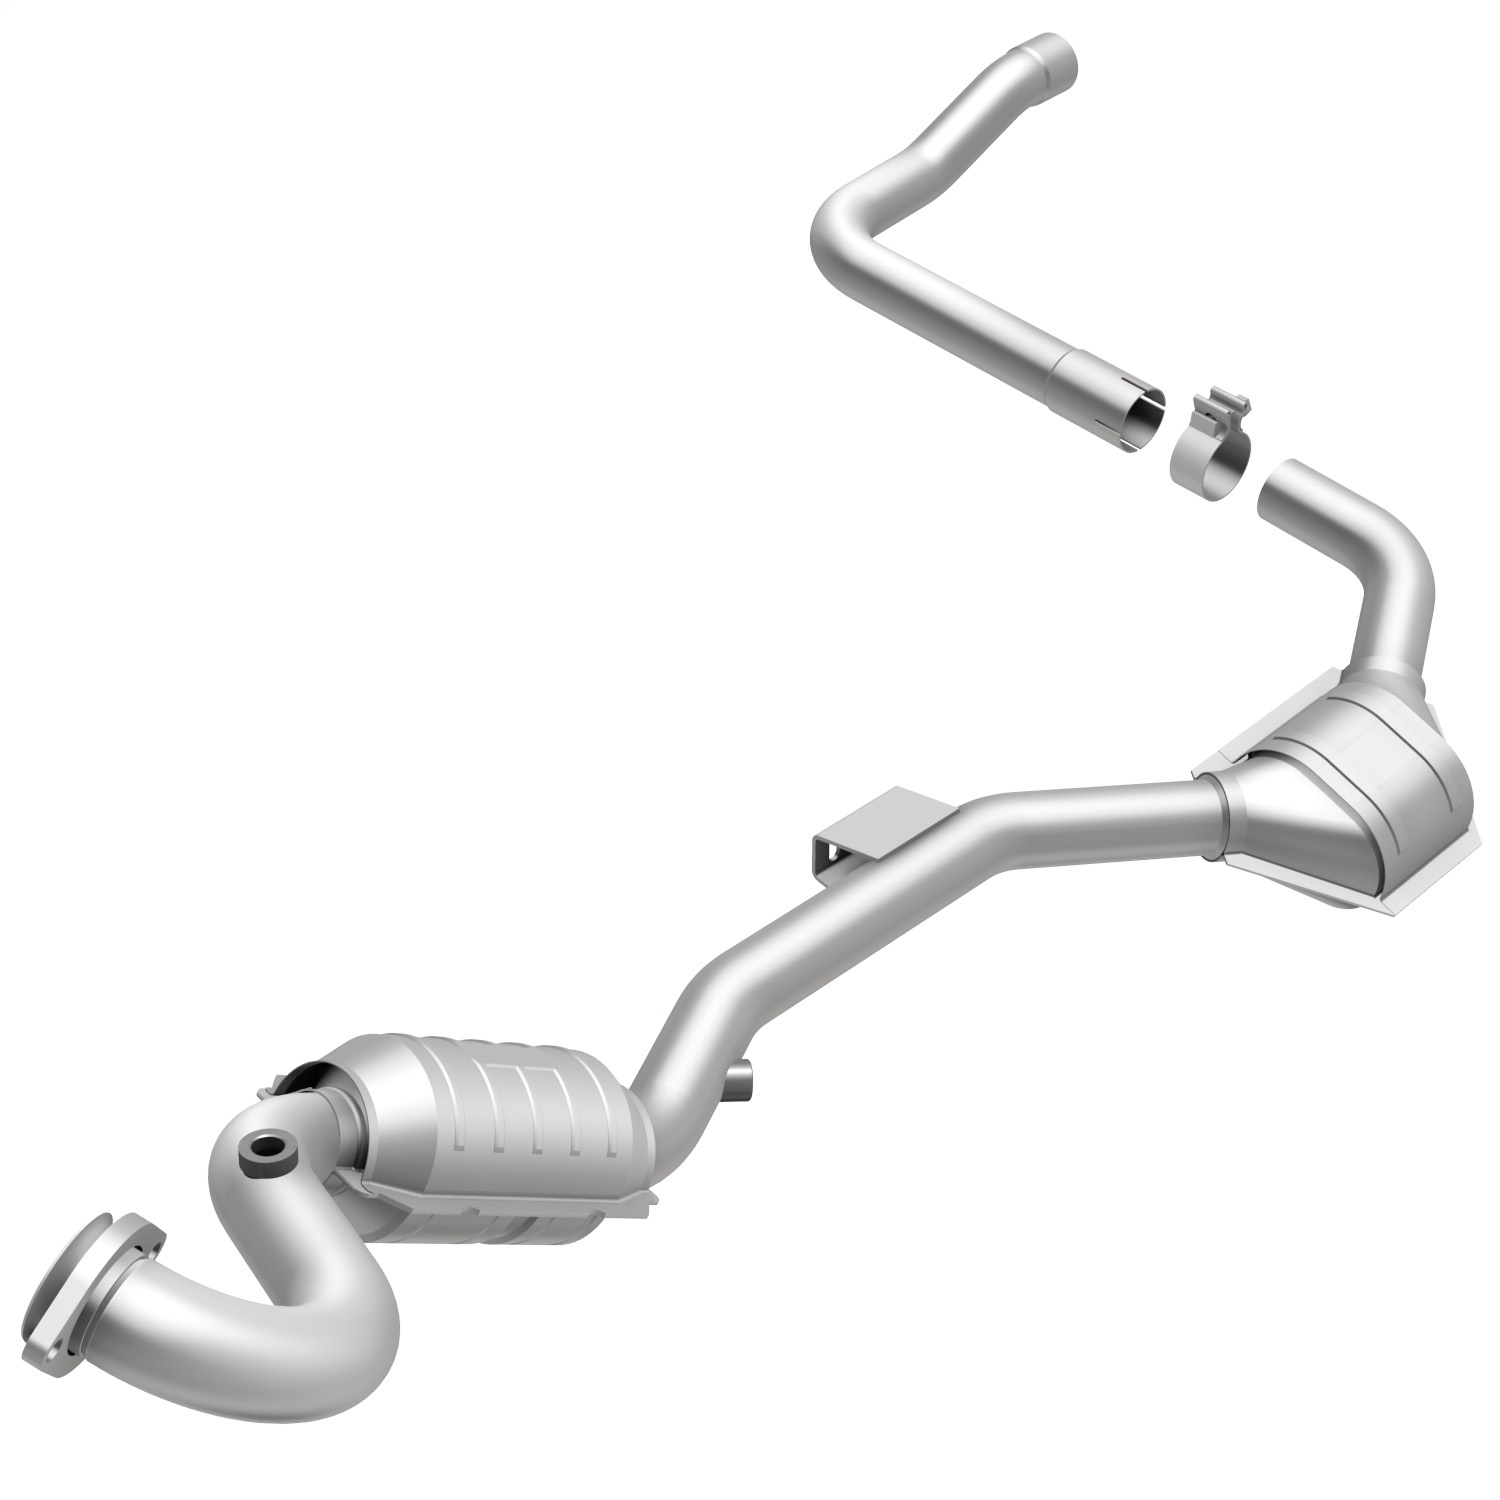 MagnaFlow 49 State Converter 49867 Direct Fit Catalytic Converter Fits ML430